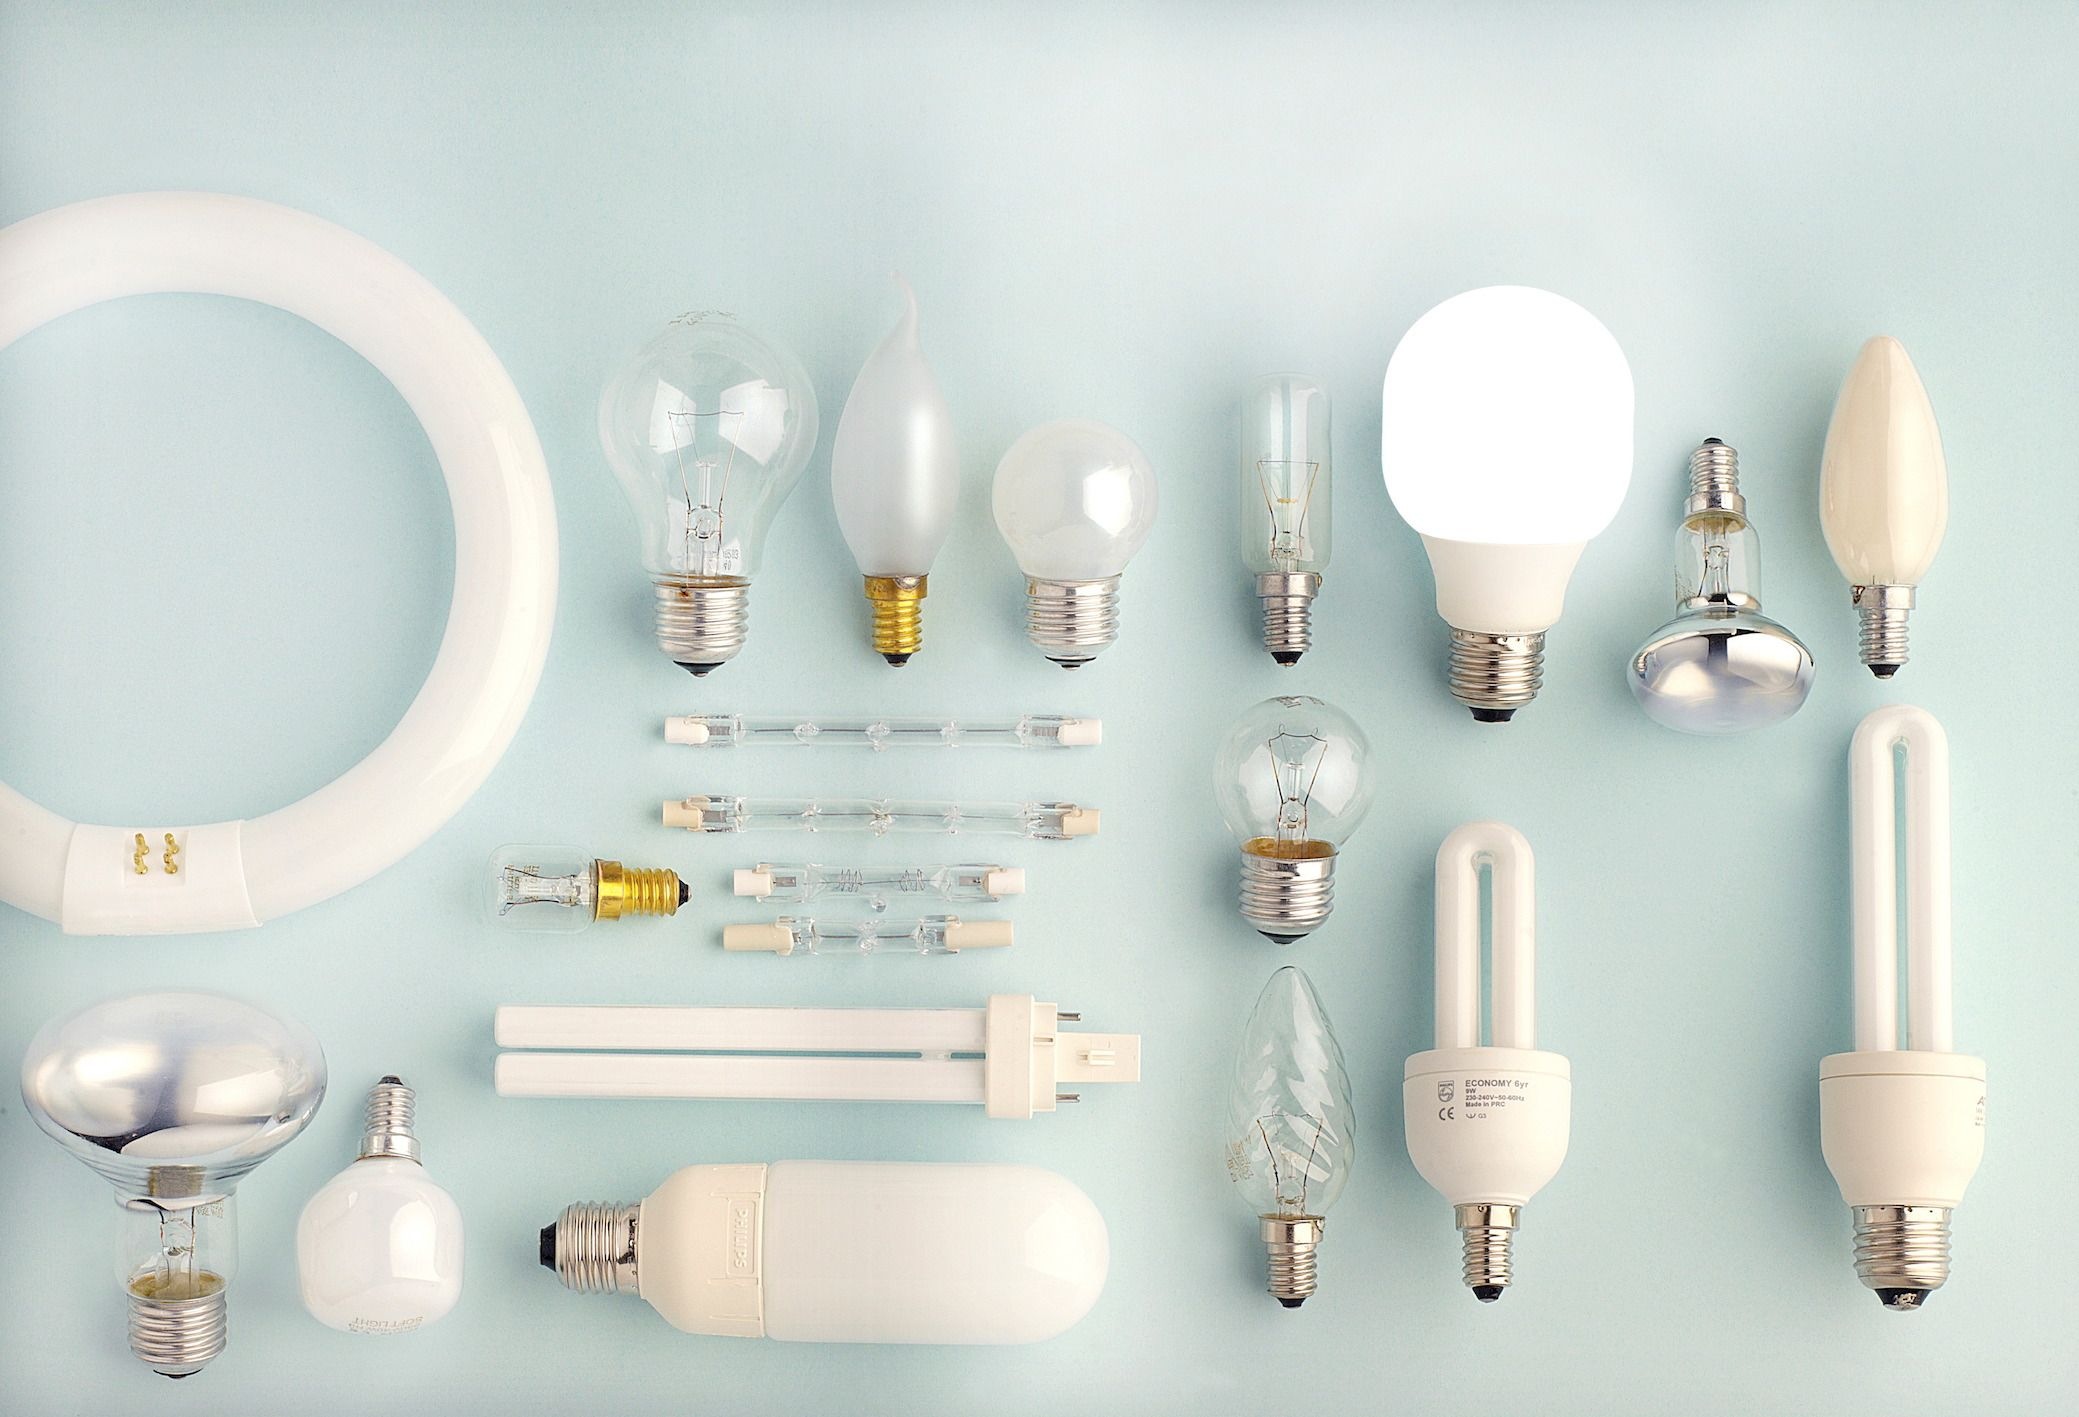 Different Types of Light Bulbs - Guide to Buying Light Bulbs